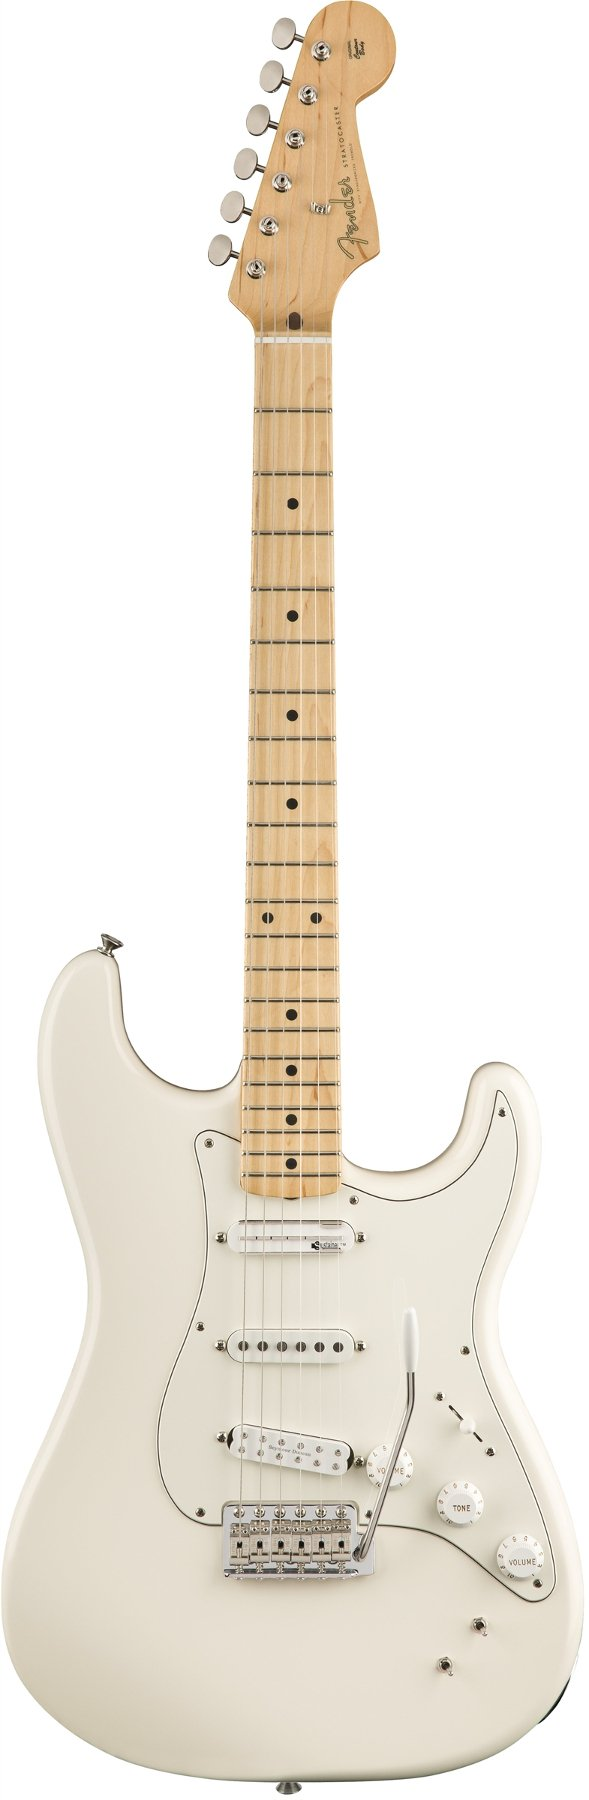 Electric Guitar, Olympic White